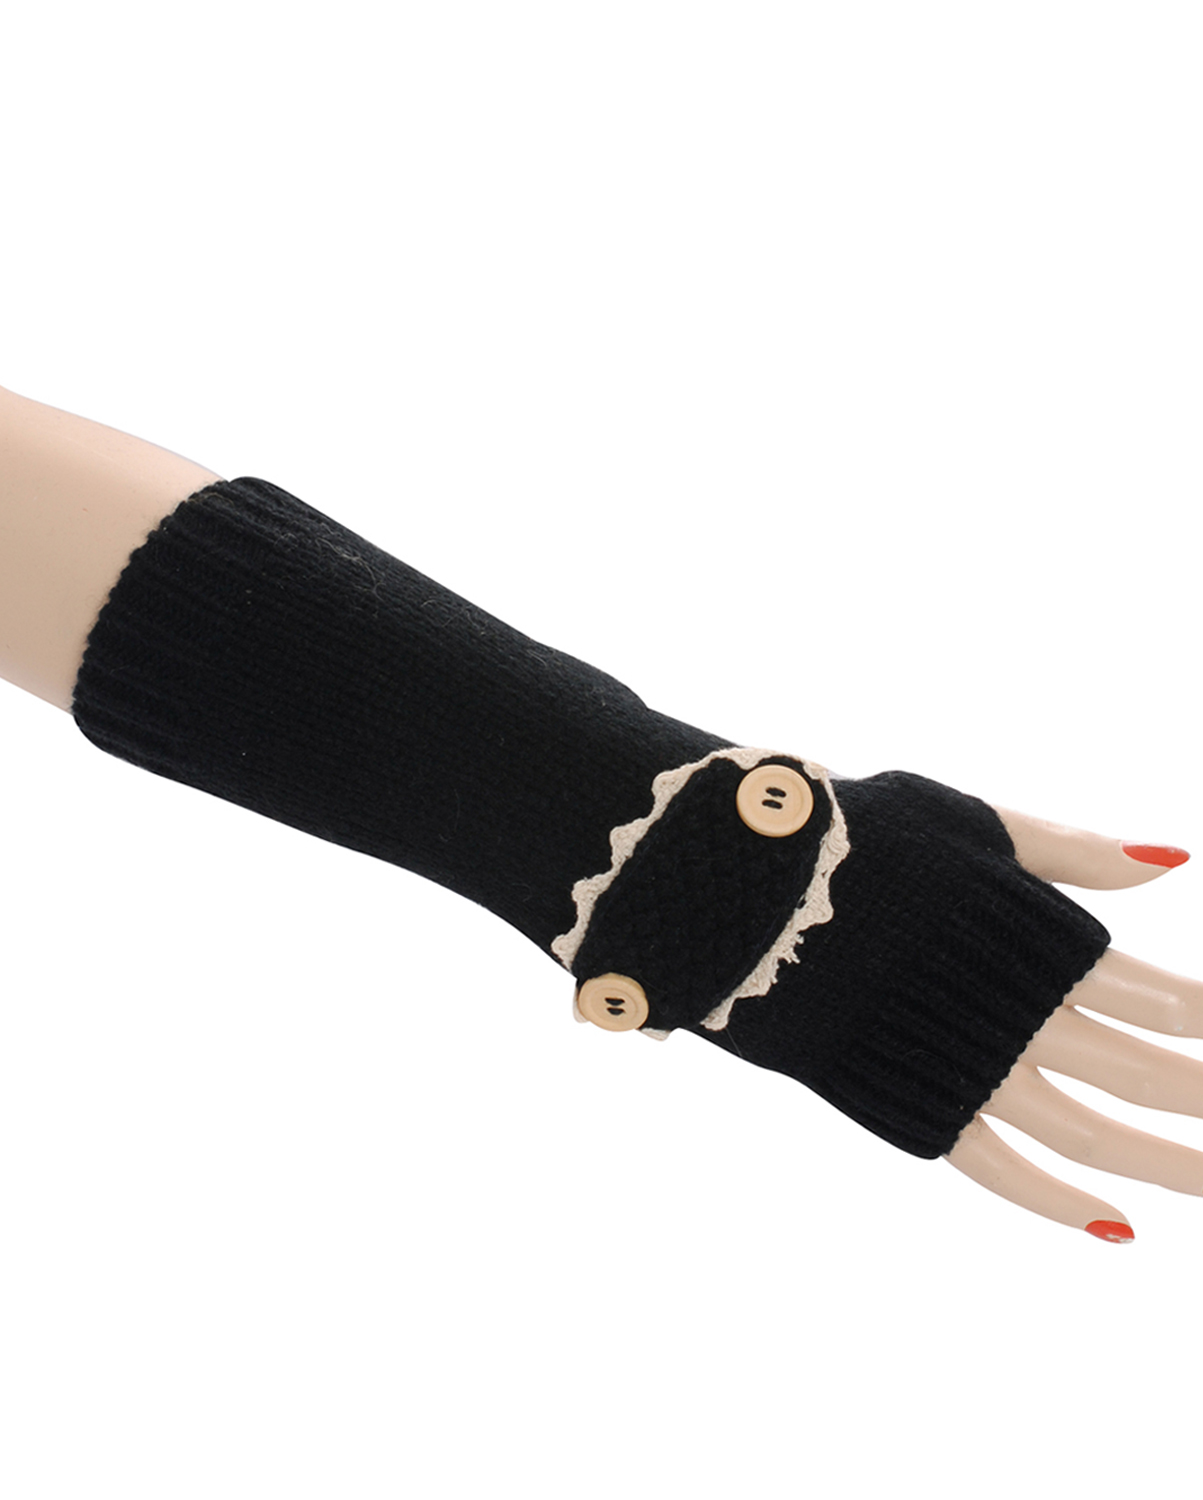 IA0008J(JB)-wholesale-gloves-knit-fingerless-lace-button-crochet-warm-winter-acrylic(0).jpg